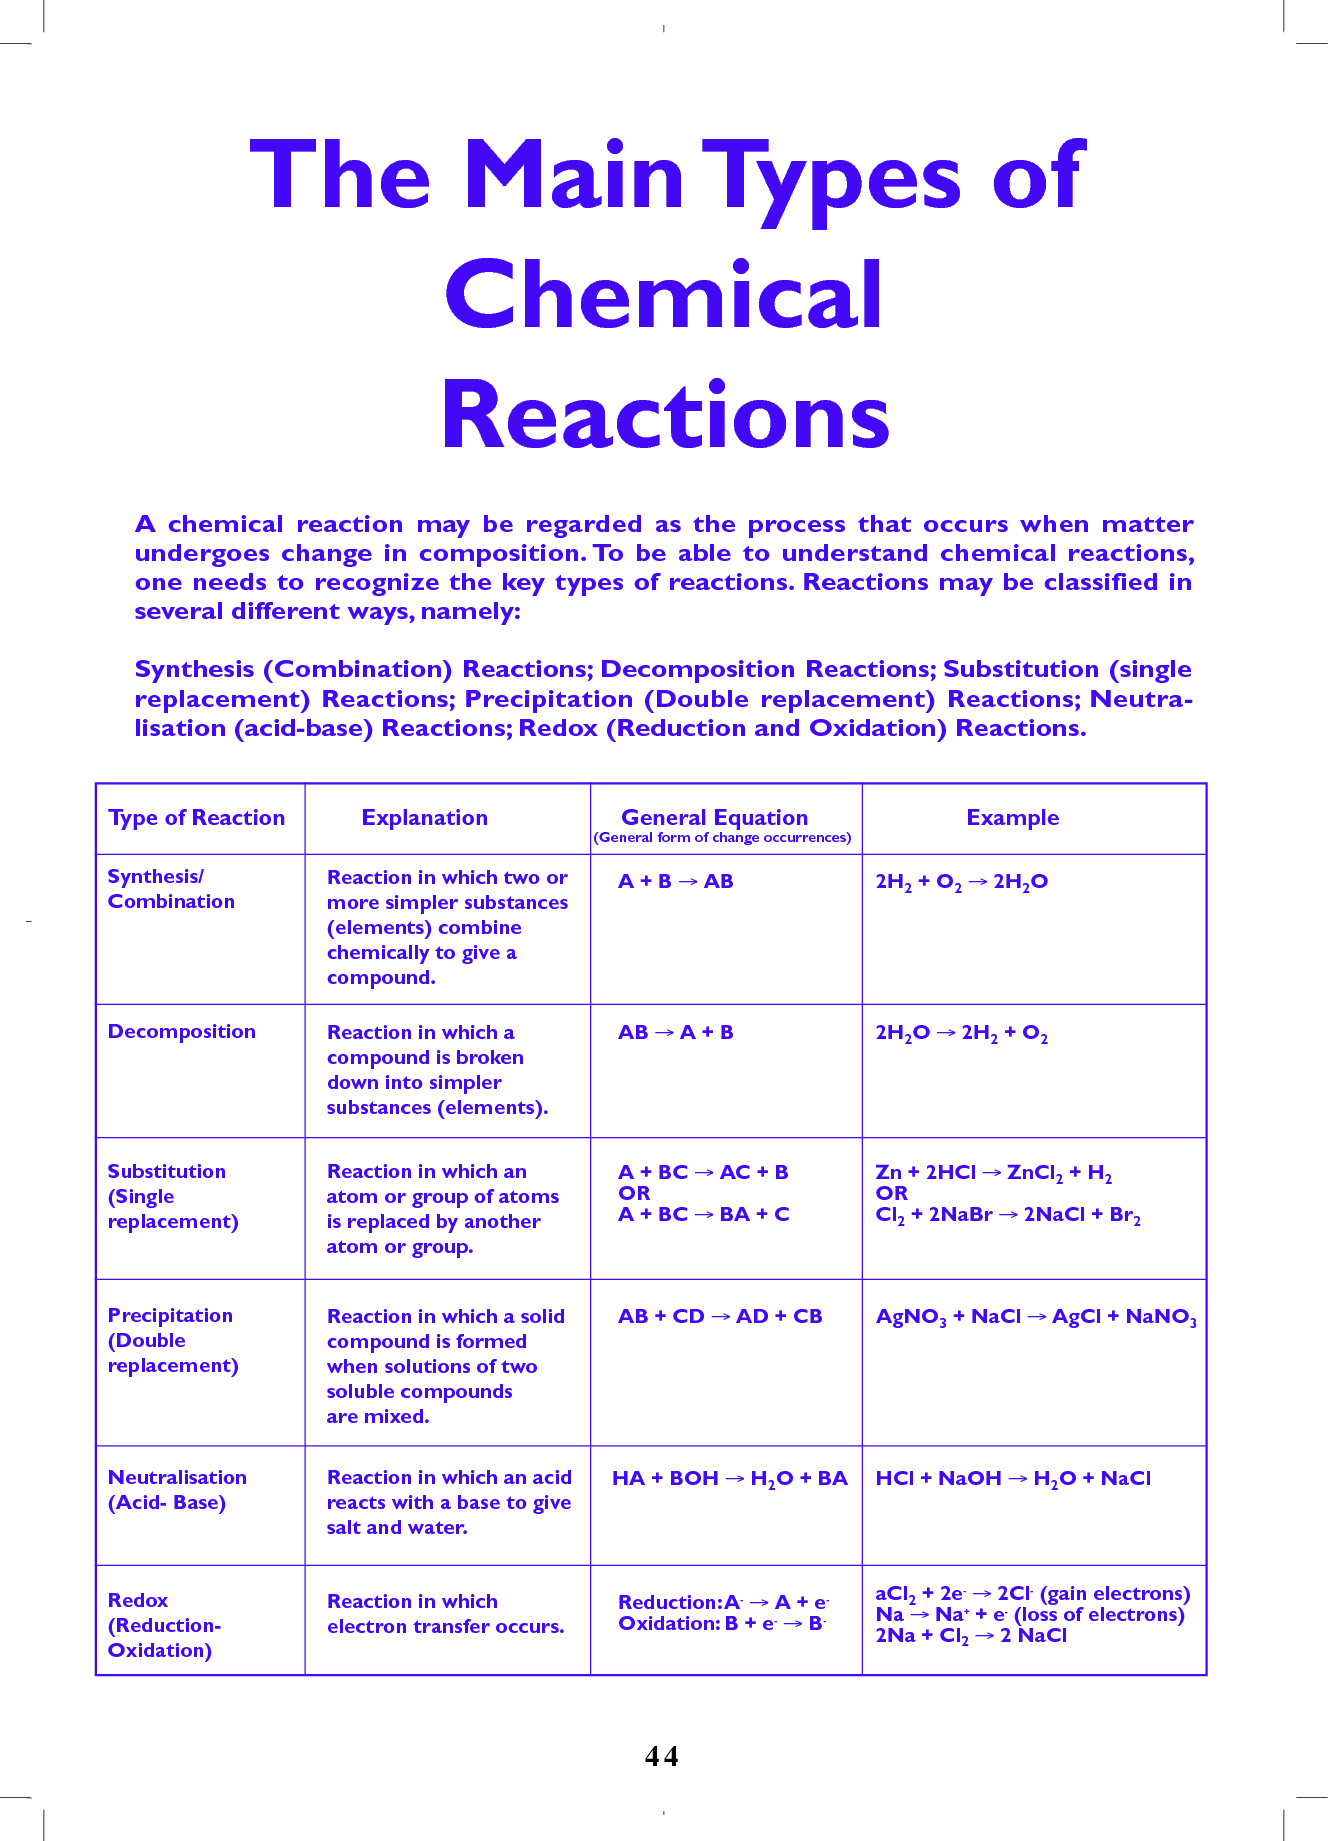 Chemical reaction types worksheet 6 2 answers